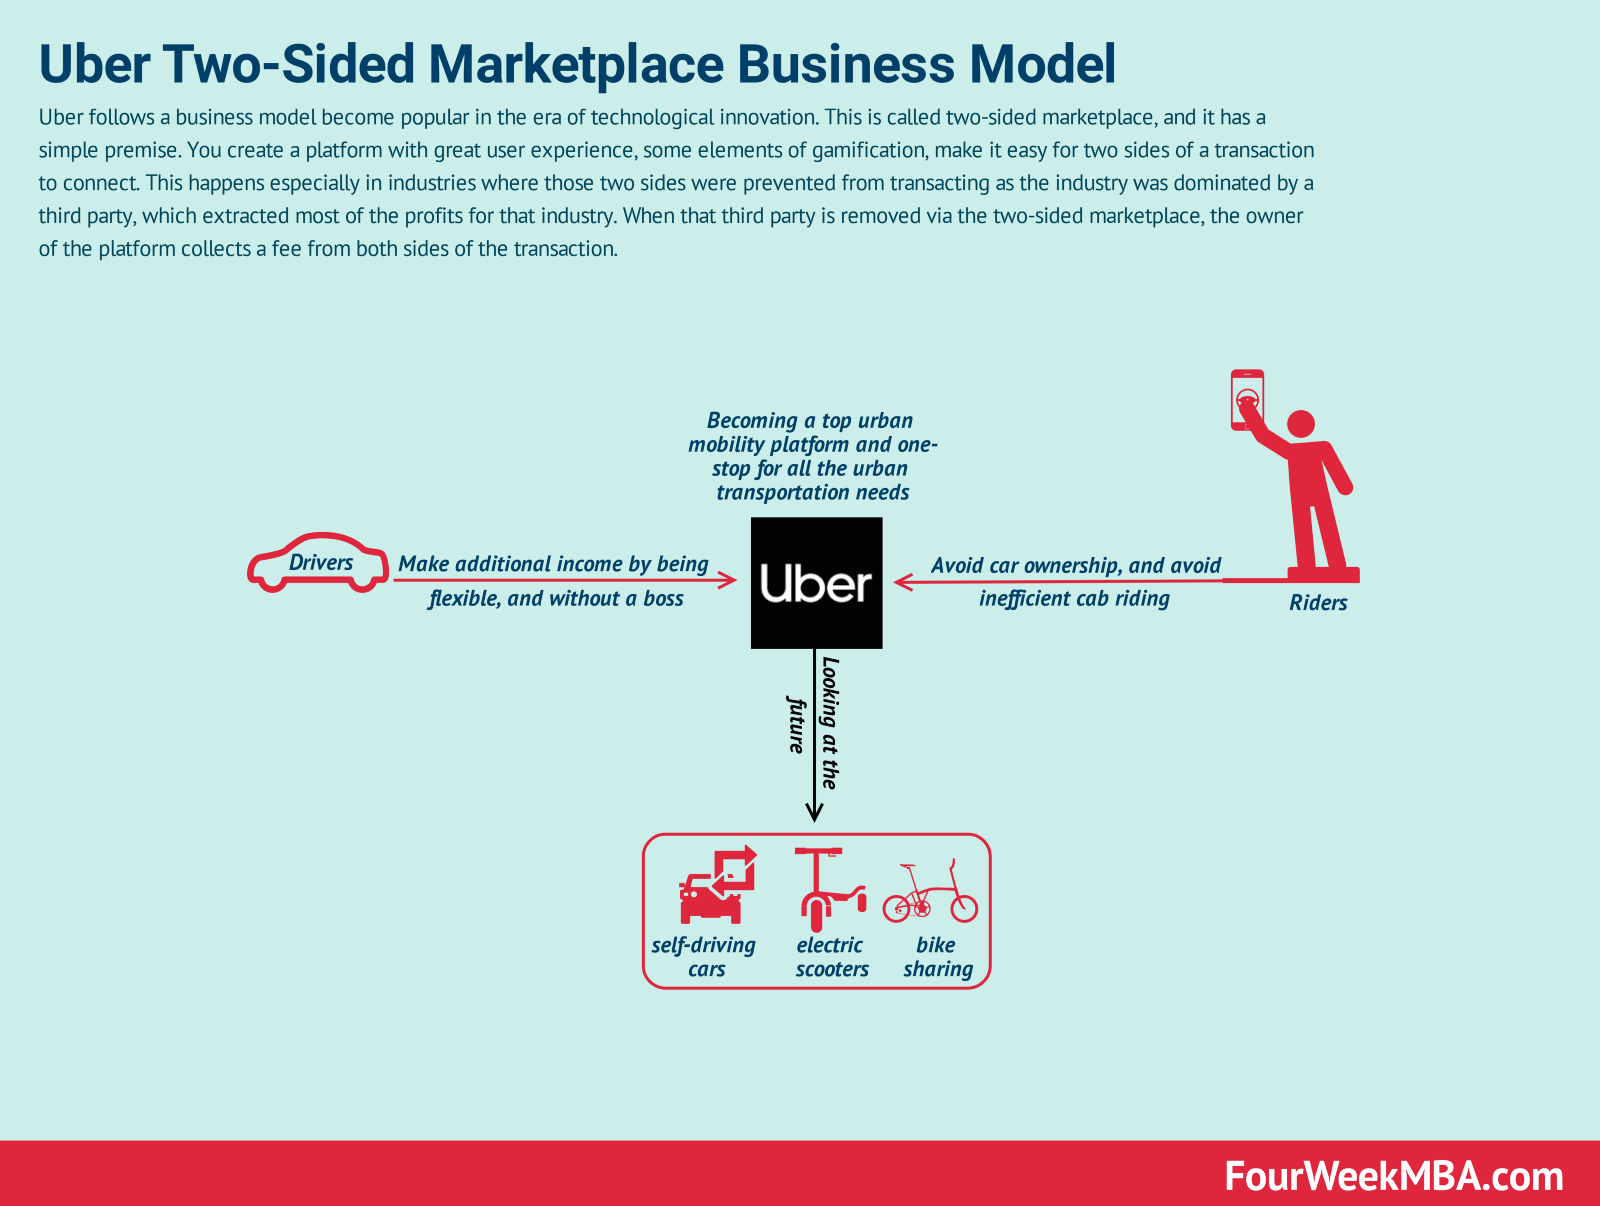 Uber And Lyft's Business Models in Laymen's Terms - By